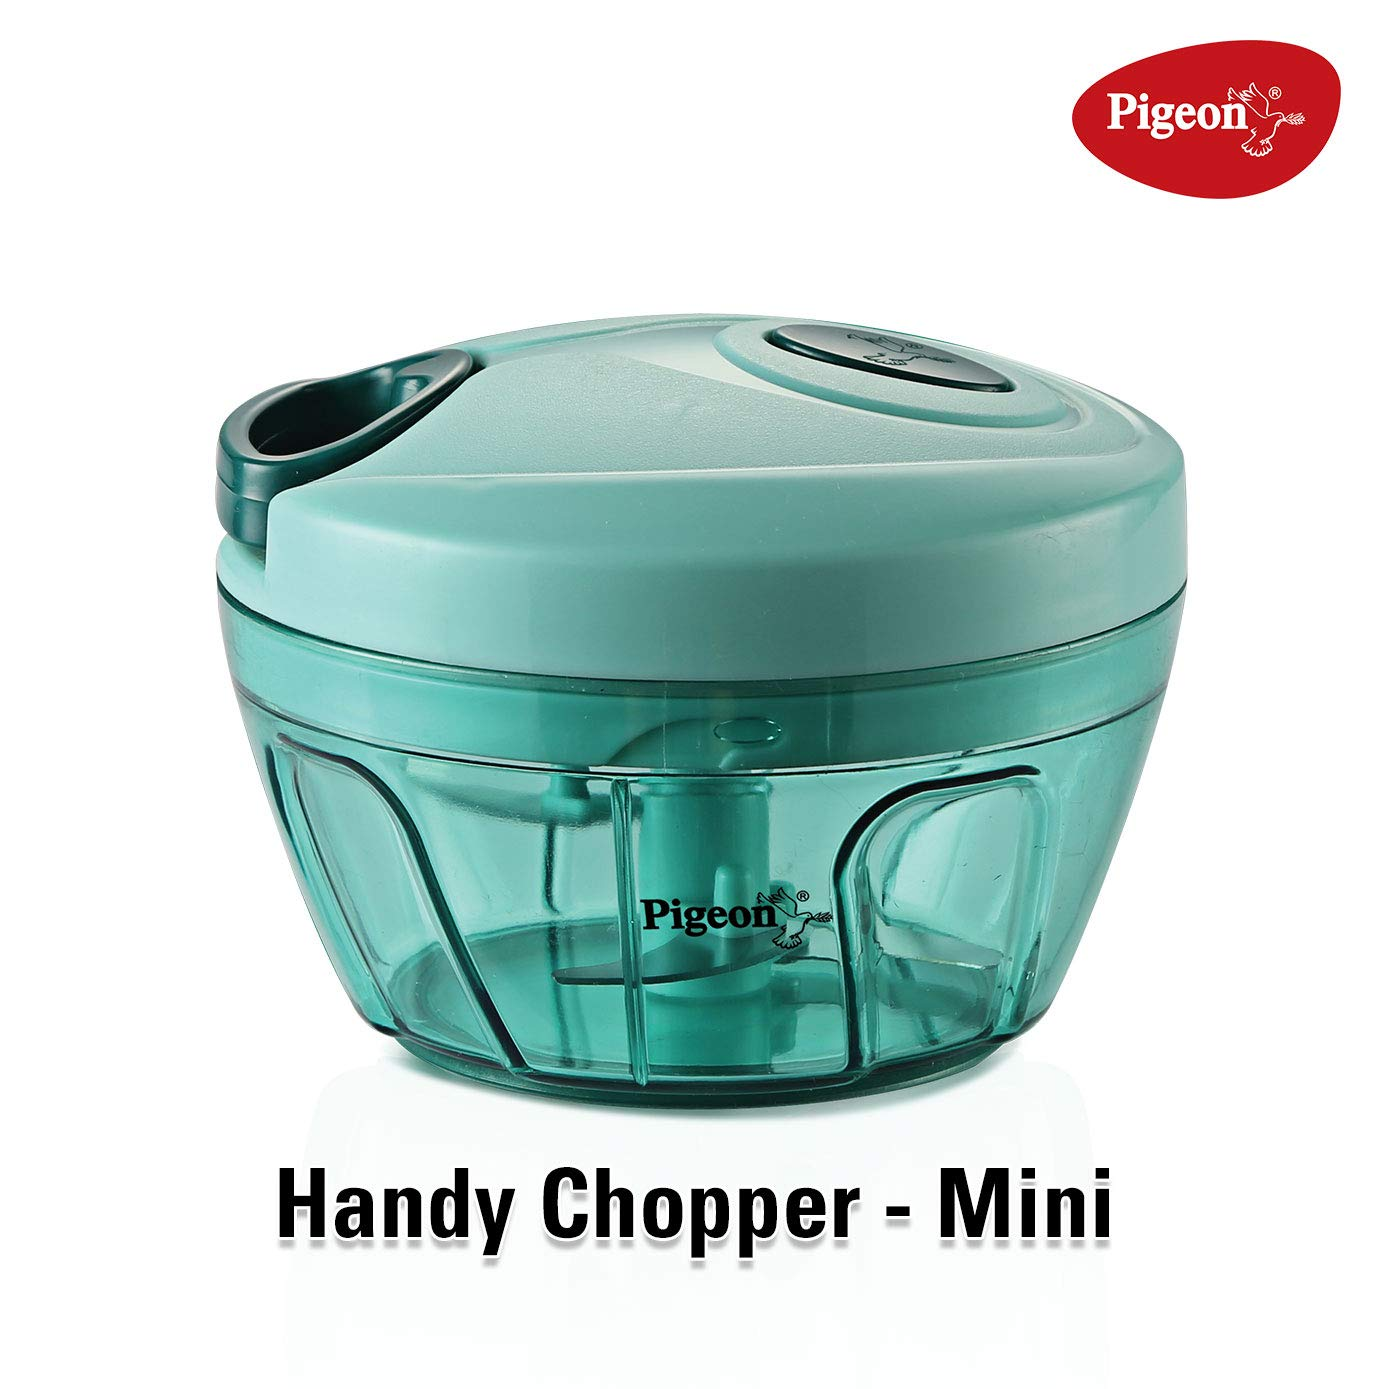 Pigeon Handy Chopper with 3 Blades: Buy Pigeon New Handy Chopper